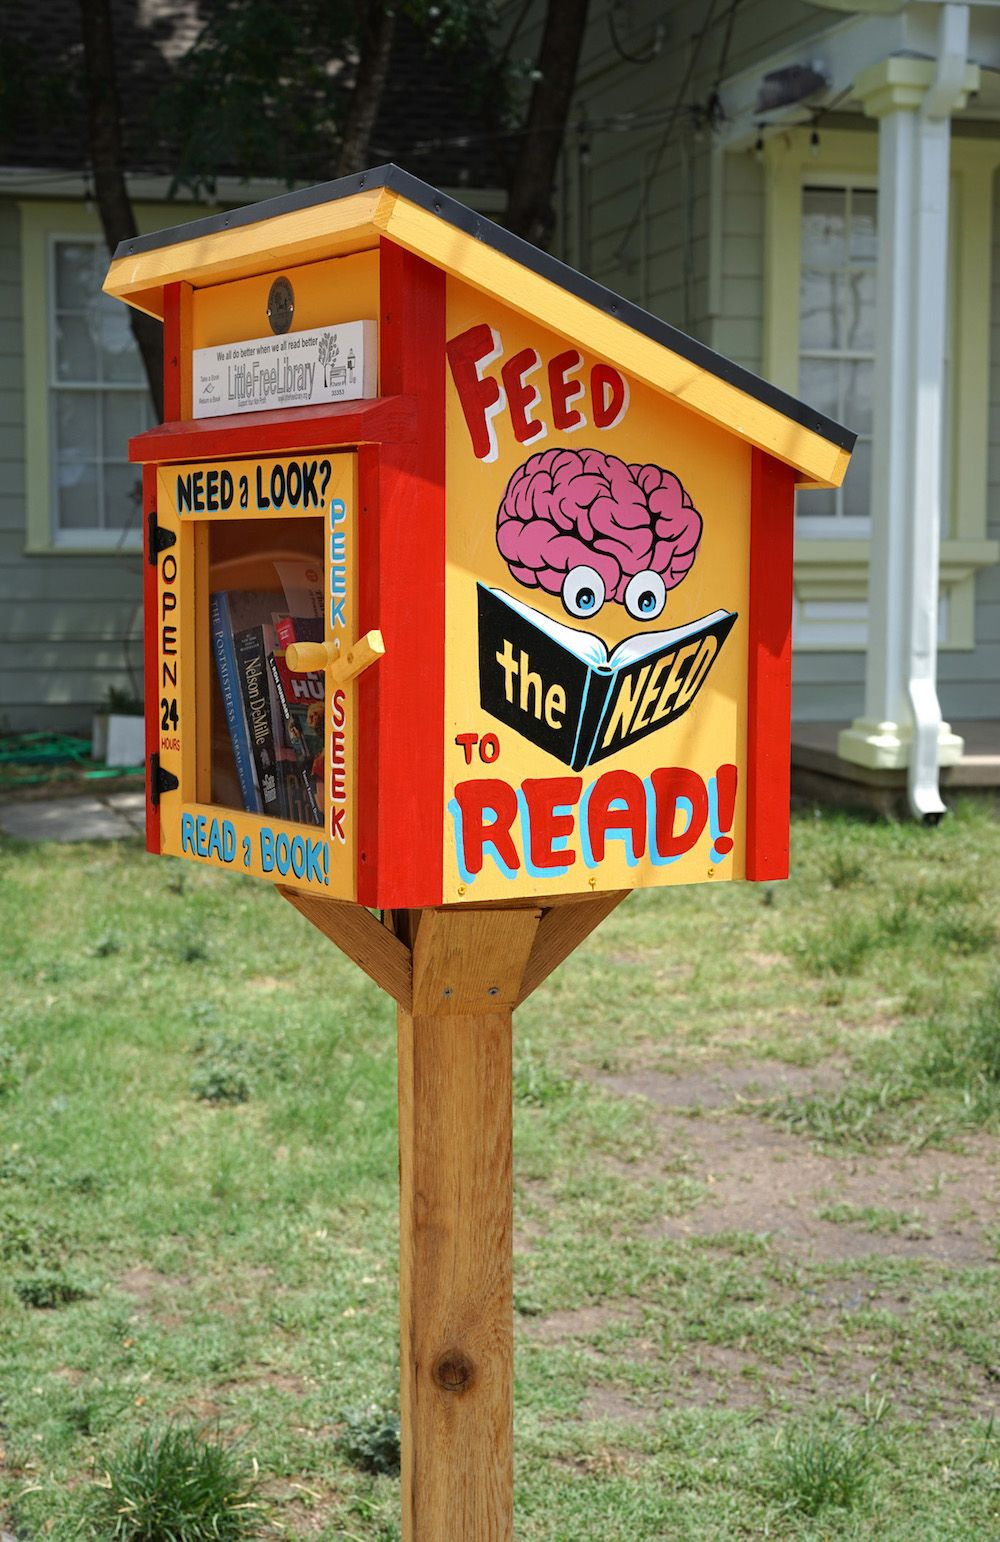 Image 2. Each Little Free Library is built differently